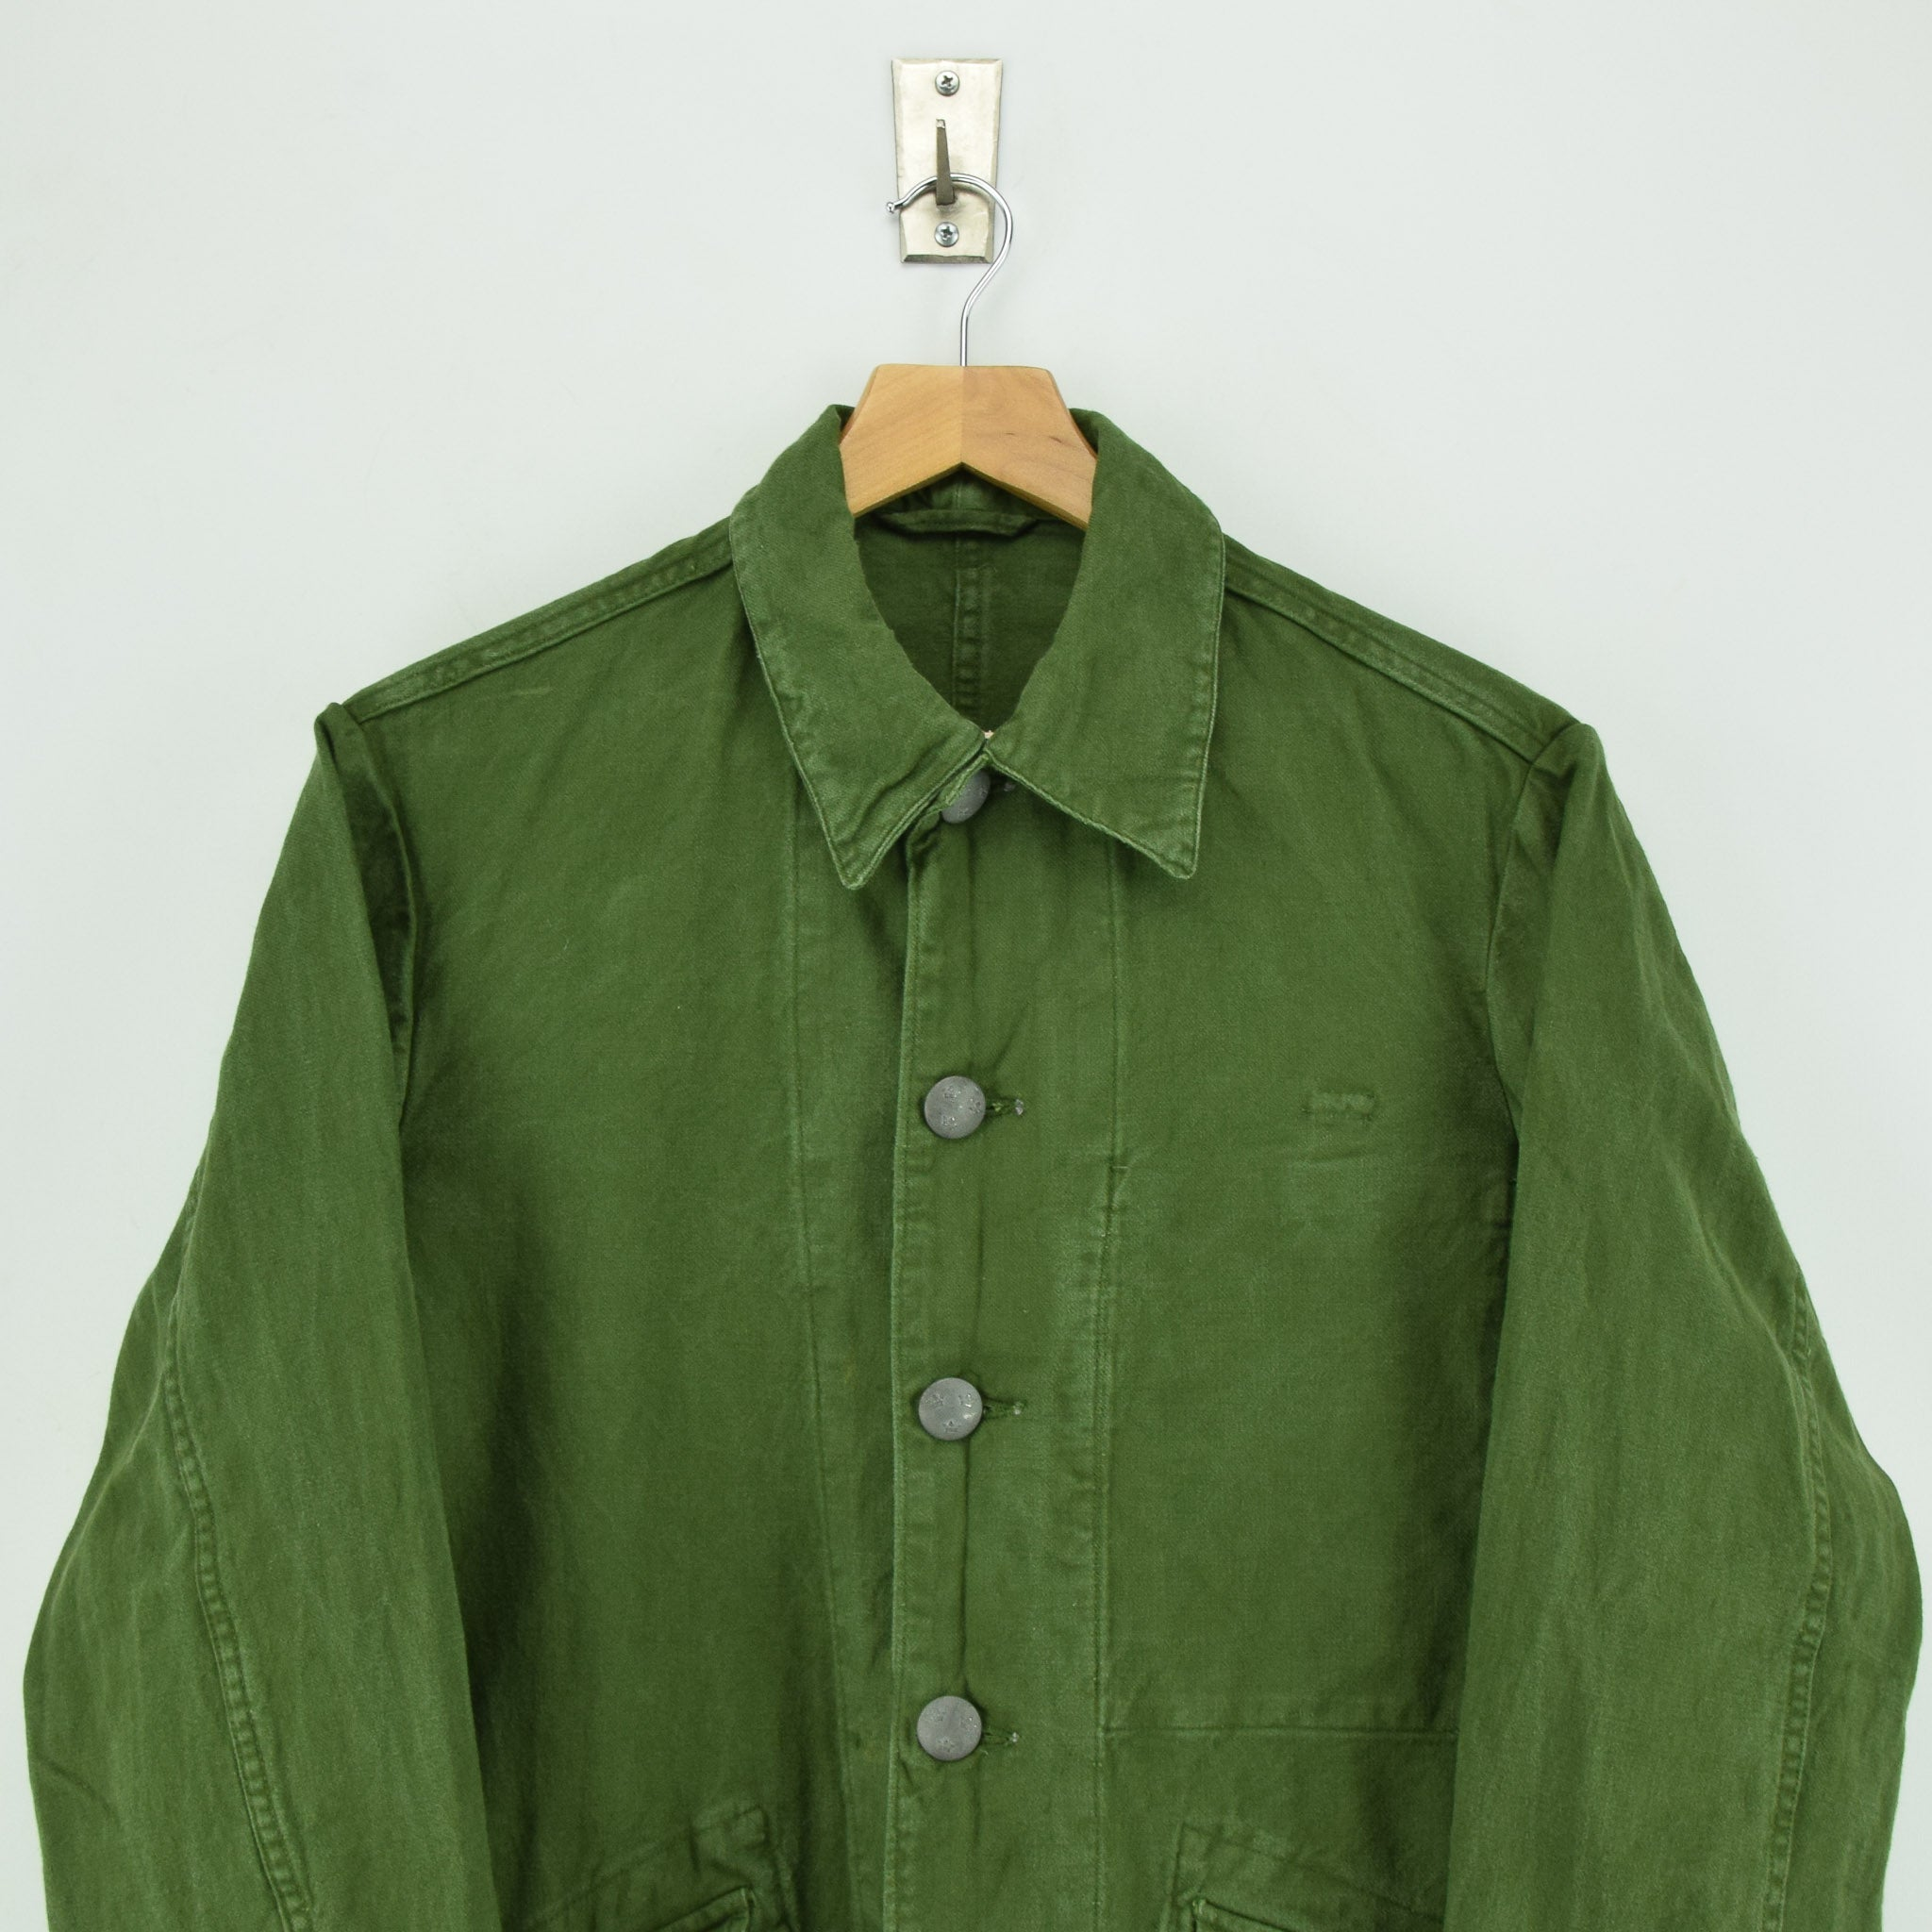 Vintage 60s Swedish Military Field Jacket Worker Style Distressed Green S chest